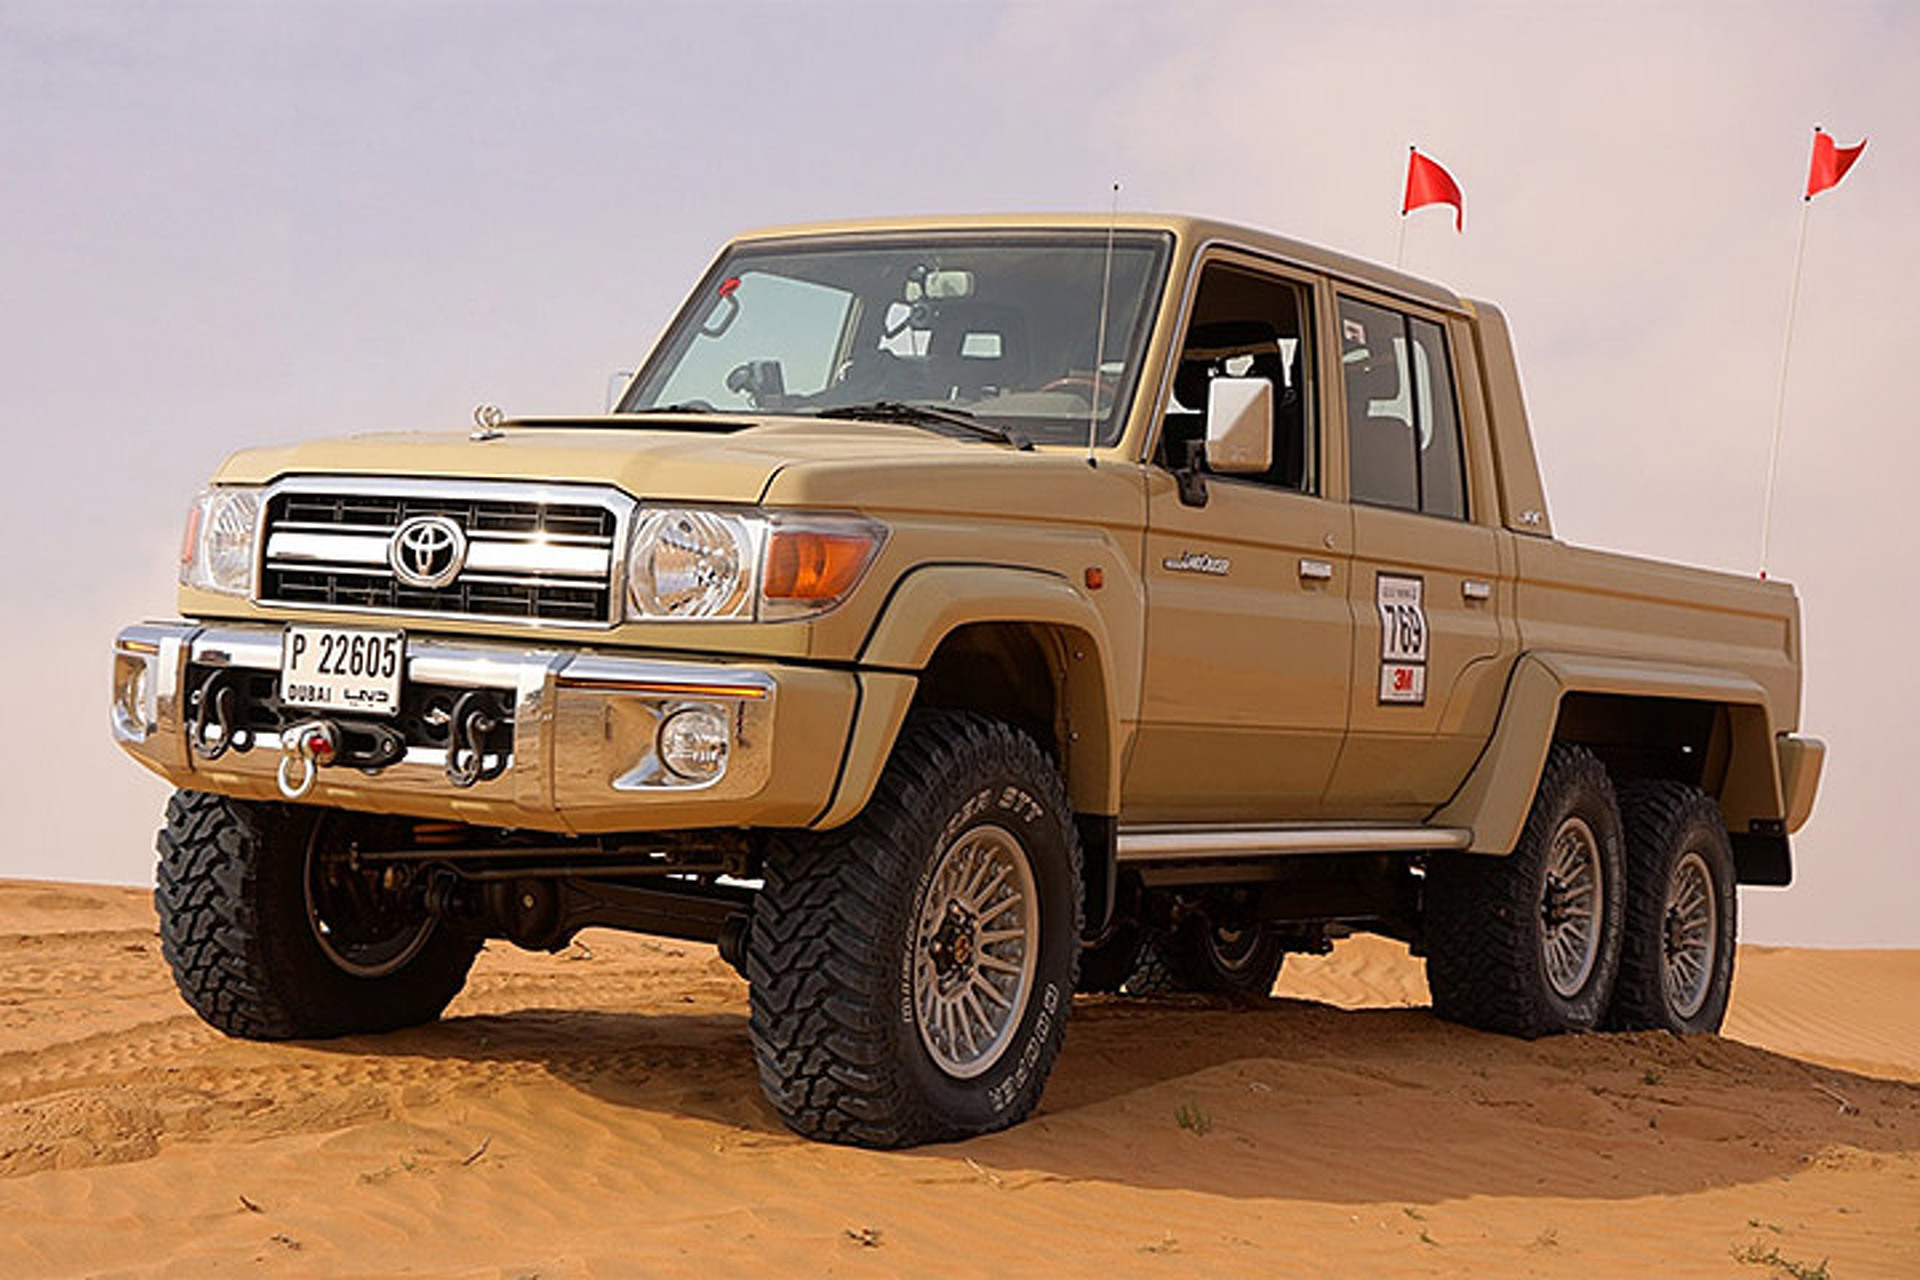 Car And Truck >> This 6x6 Toyota Land Cruiser is a Dune-Crushing Monster